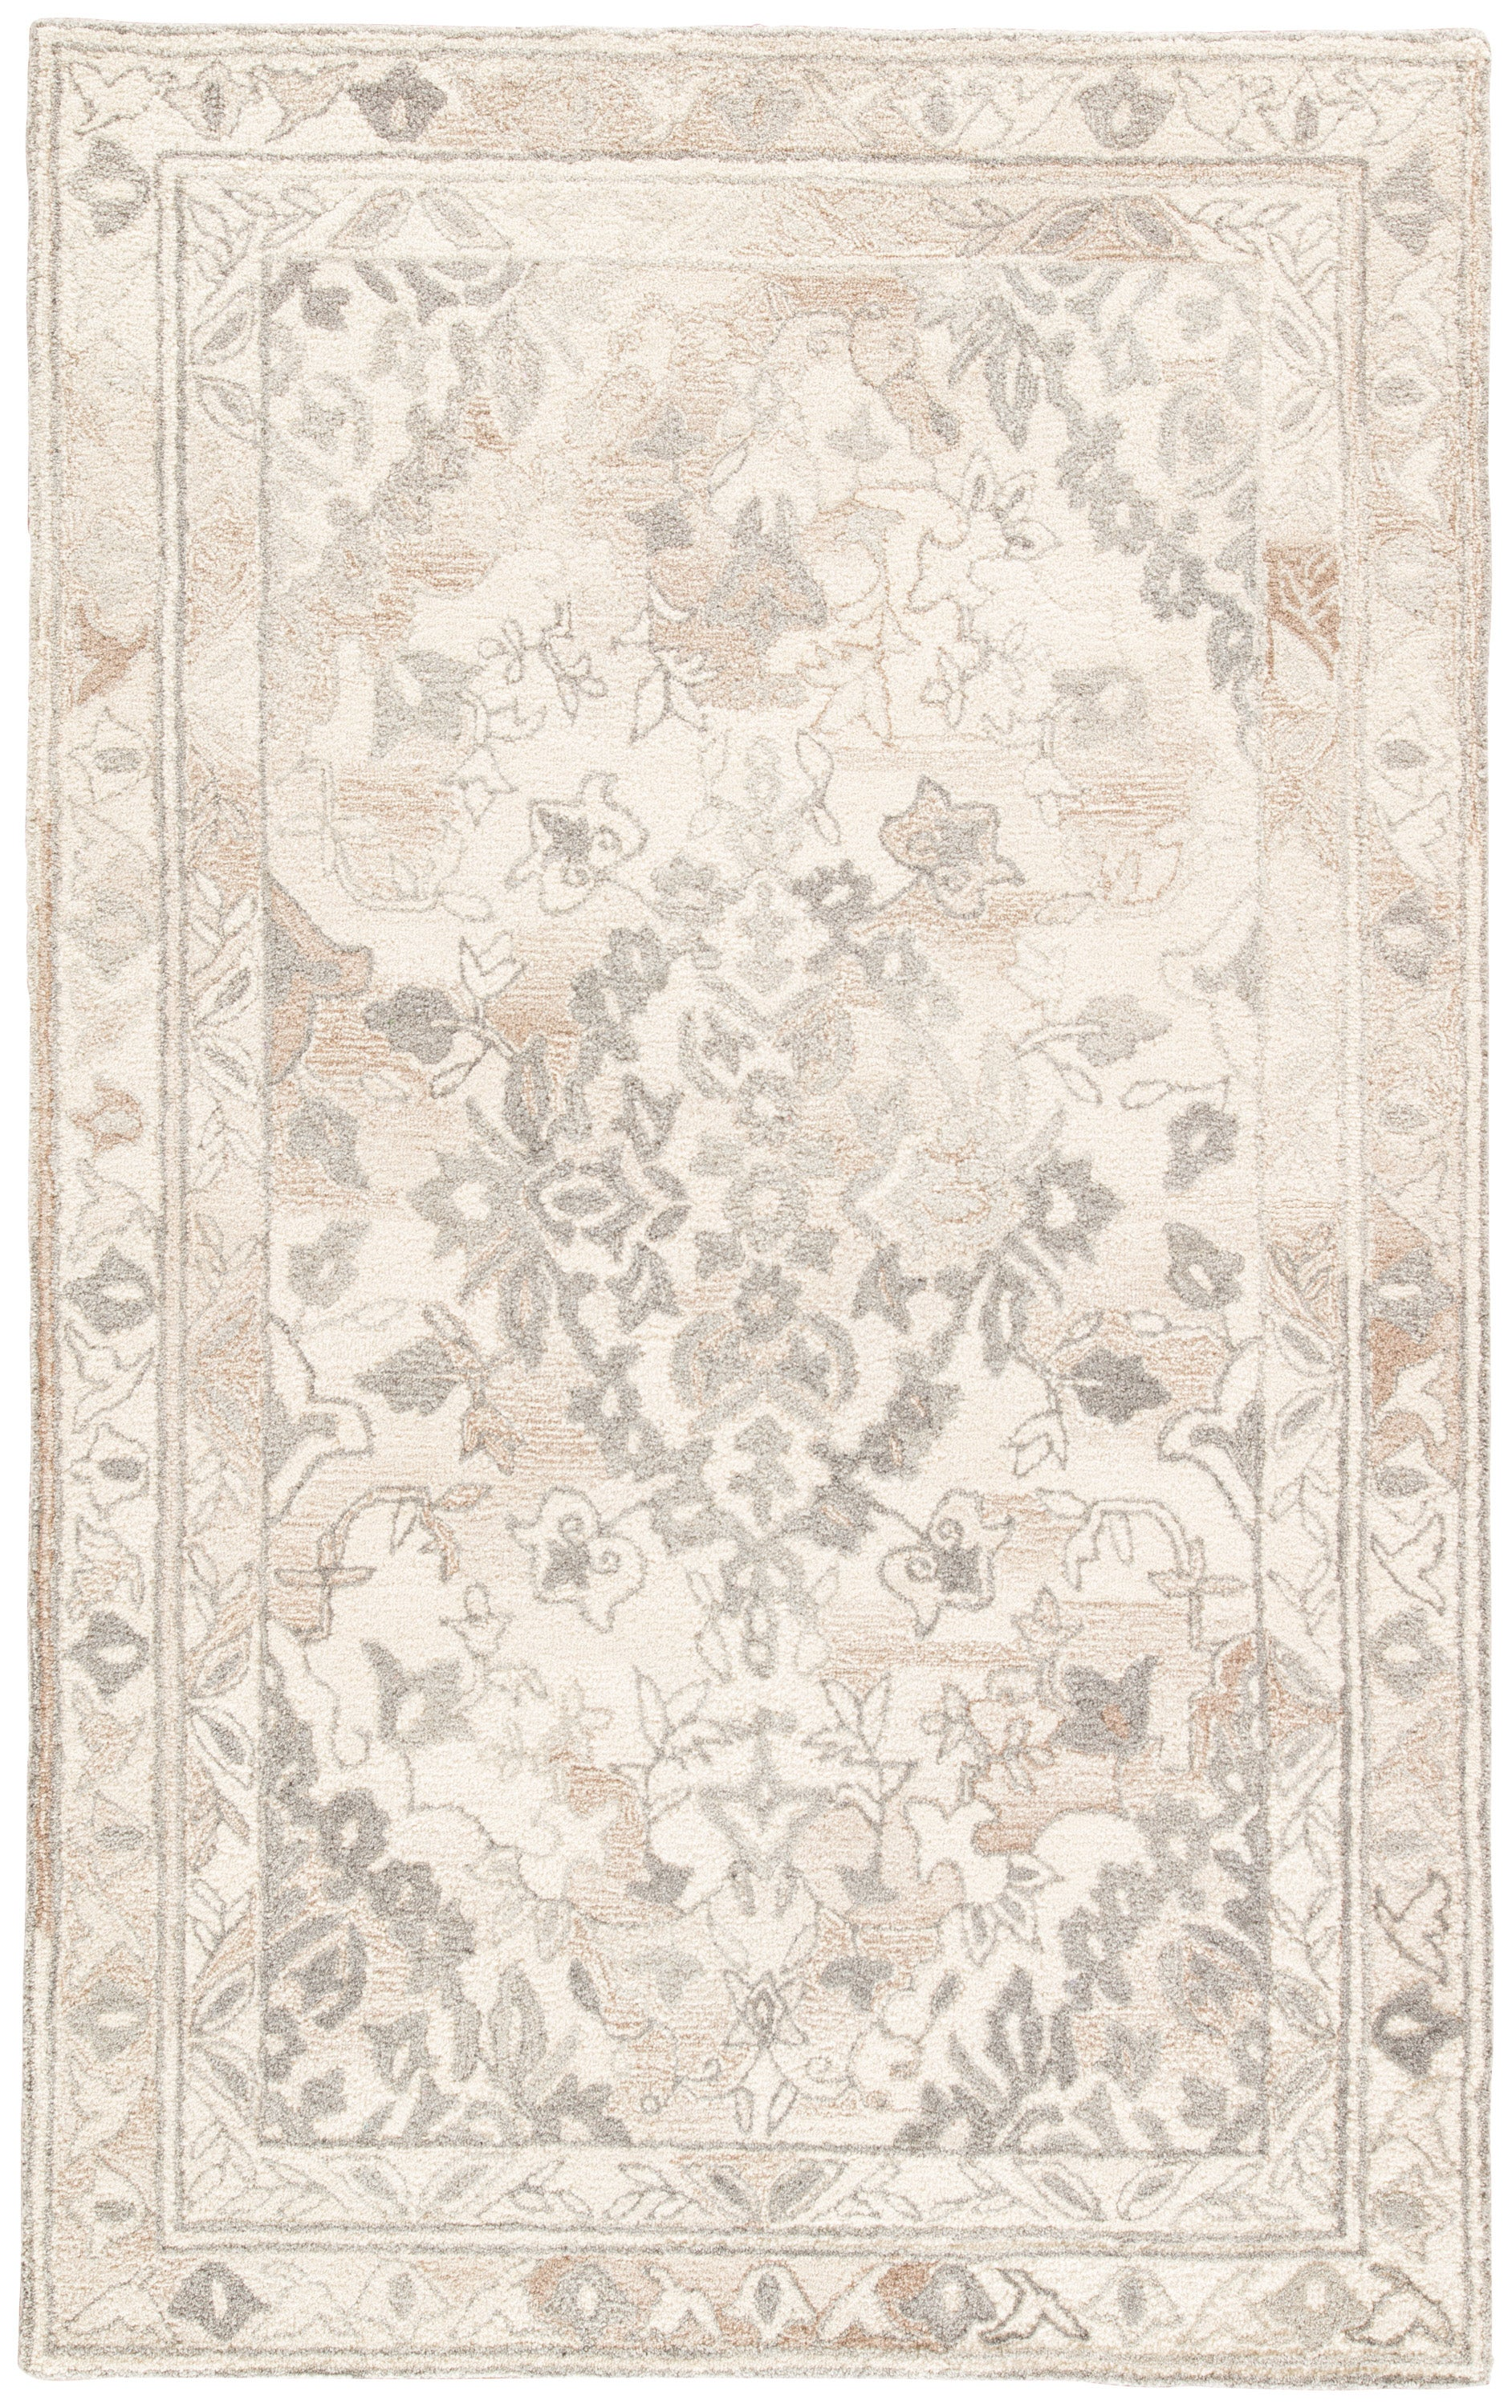 Rectangle White Floral Hand Tufted Wool Transitional recommended for Bedroom, Bathroom, Dining Room, Office, Hallway, Living Room